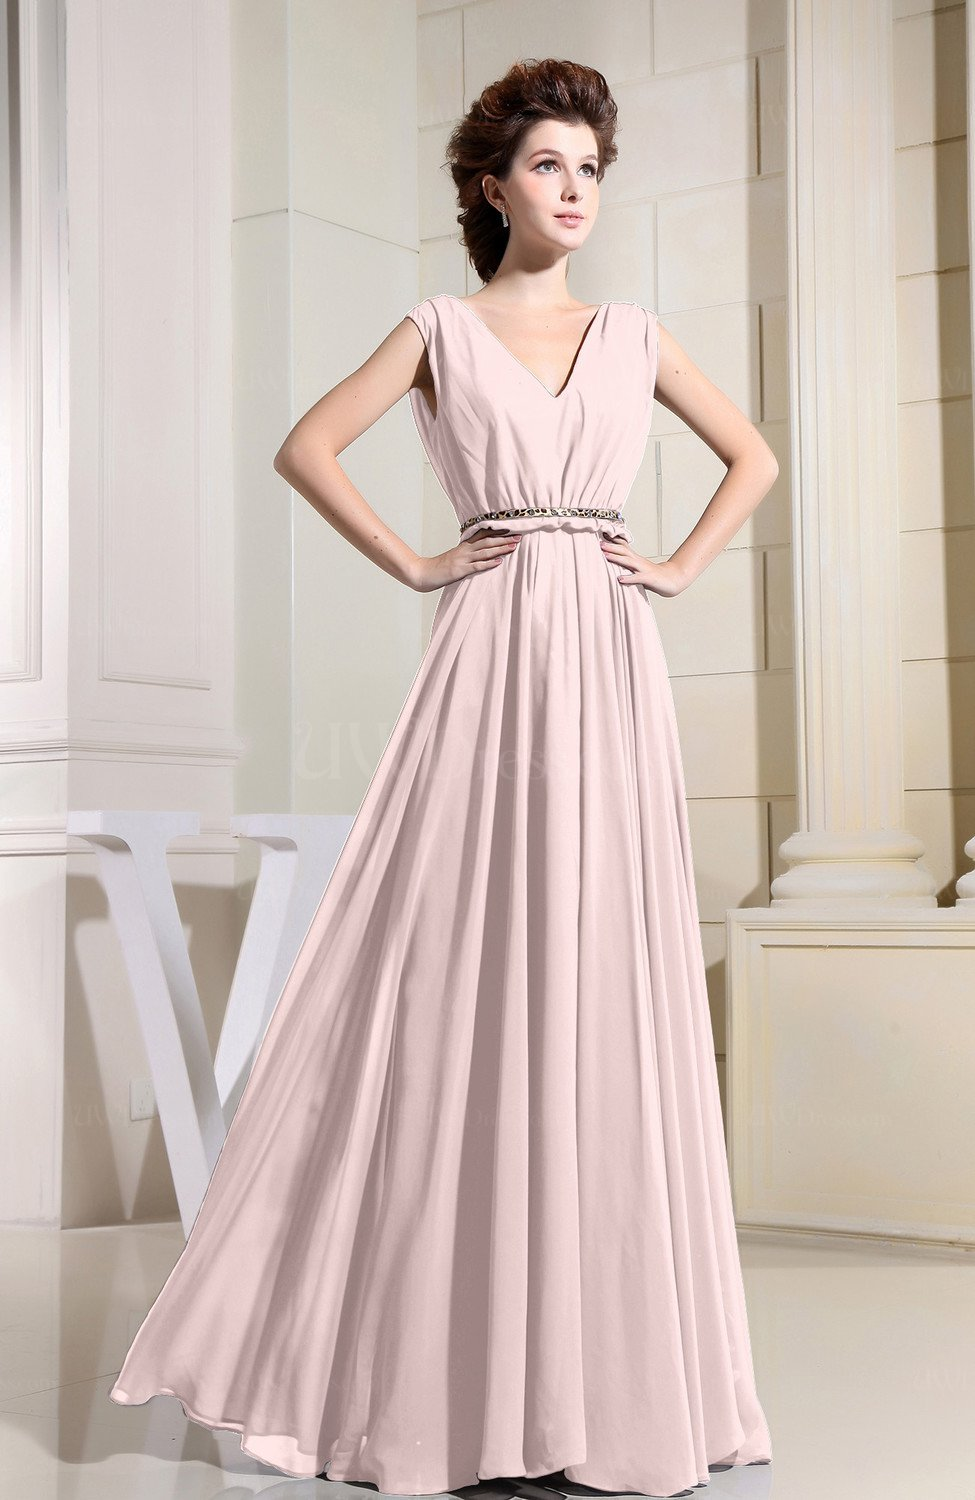 Pink Informal Wedding Dresses : Light pink casual v neck sleeveless chiffon pleated